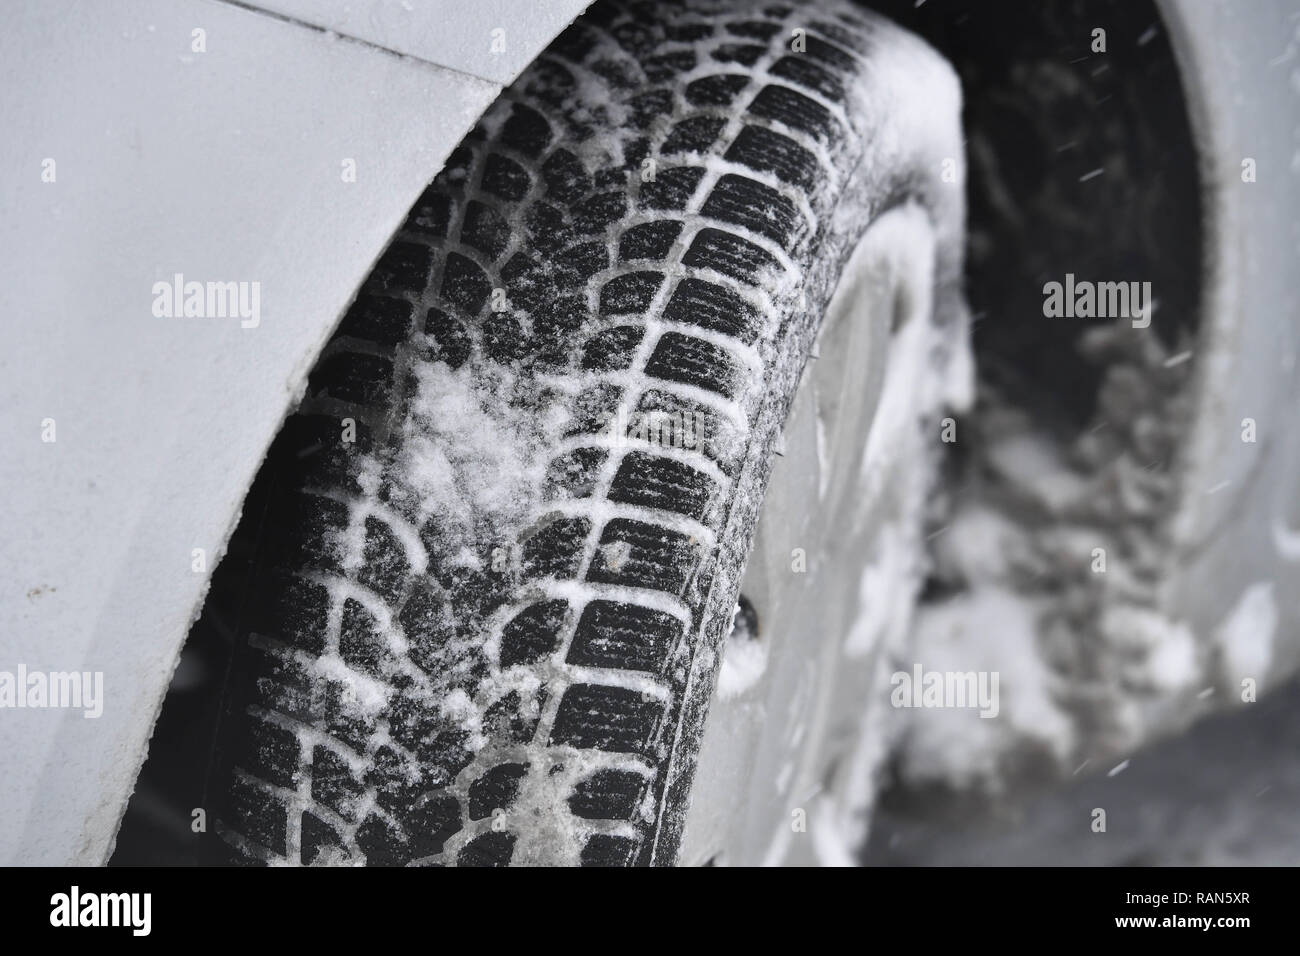 Munich Riem, Deutschland. 05th Jan, 2019. Weather feature-snow-covered cars, cars are on the roadside in a housing estate, winter tires, profile, winter wheels, Continuing snowfall on 05.01.2019, ensure snow chaos, traffic chaos, winter in Bavaria. | usage worldwide Credit: dpa/Alamy Live News Credit: dpa picture alliance/Alamy Live News - Stock Image